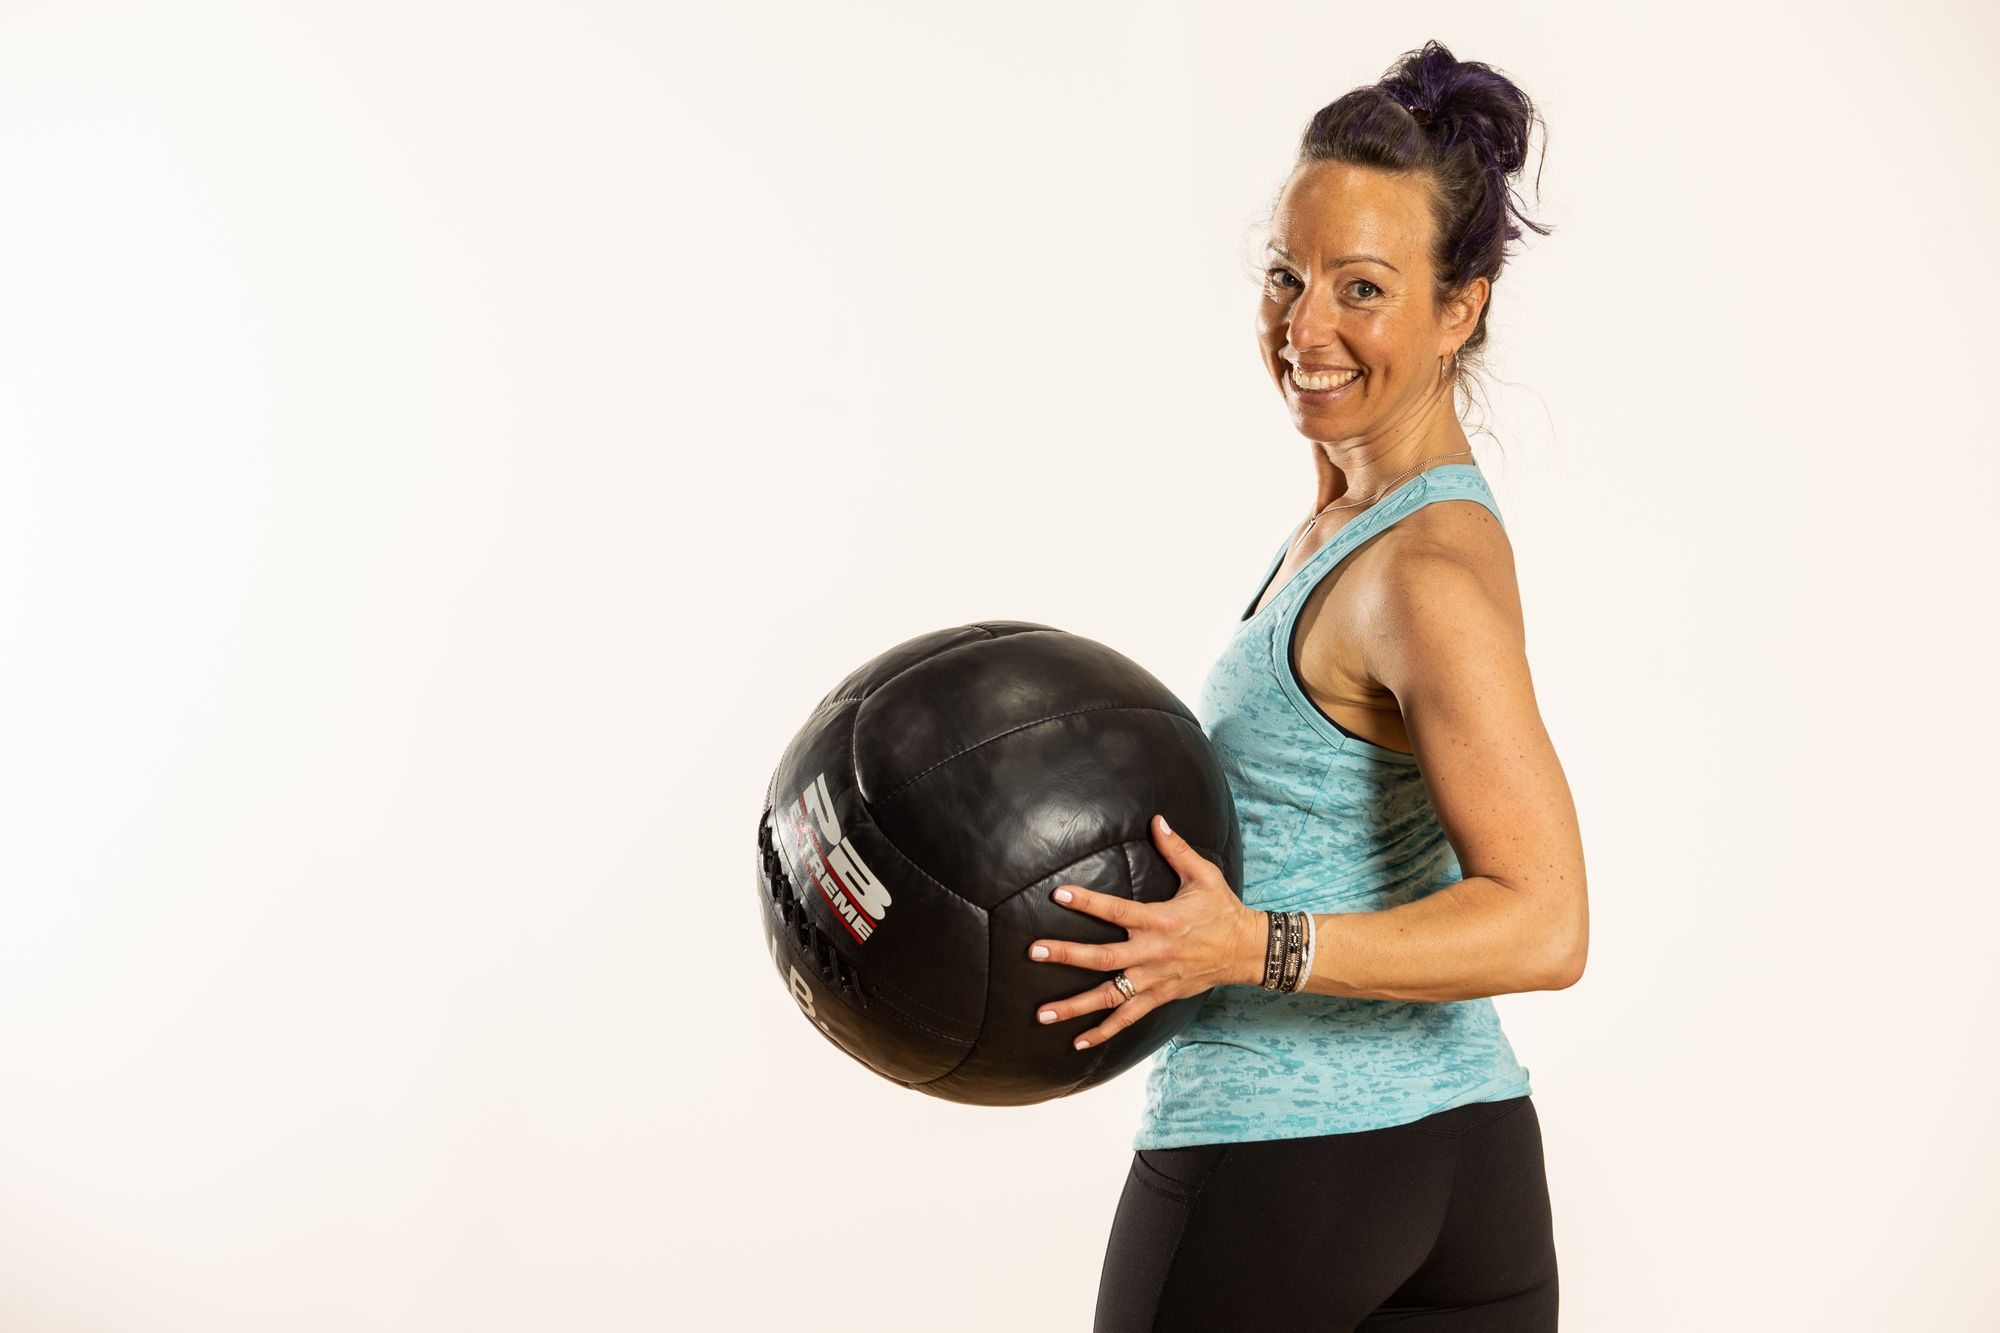 Coach for healthy living & fitness - Jan Taylor